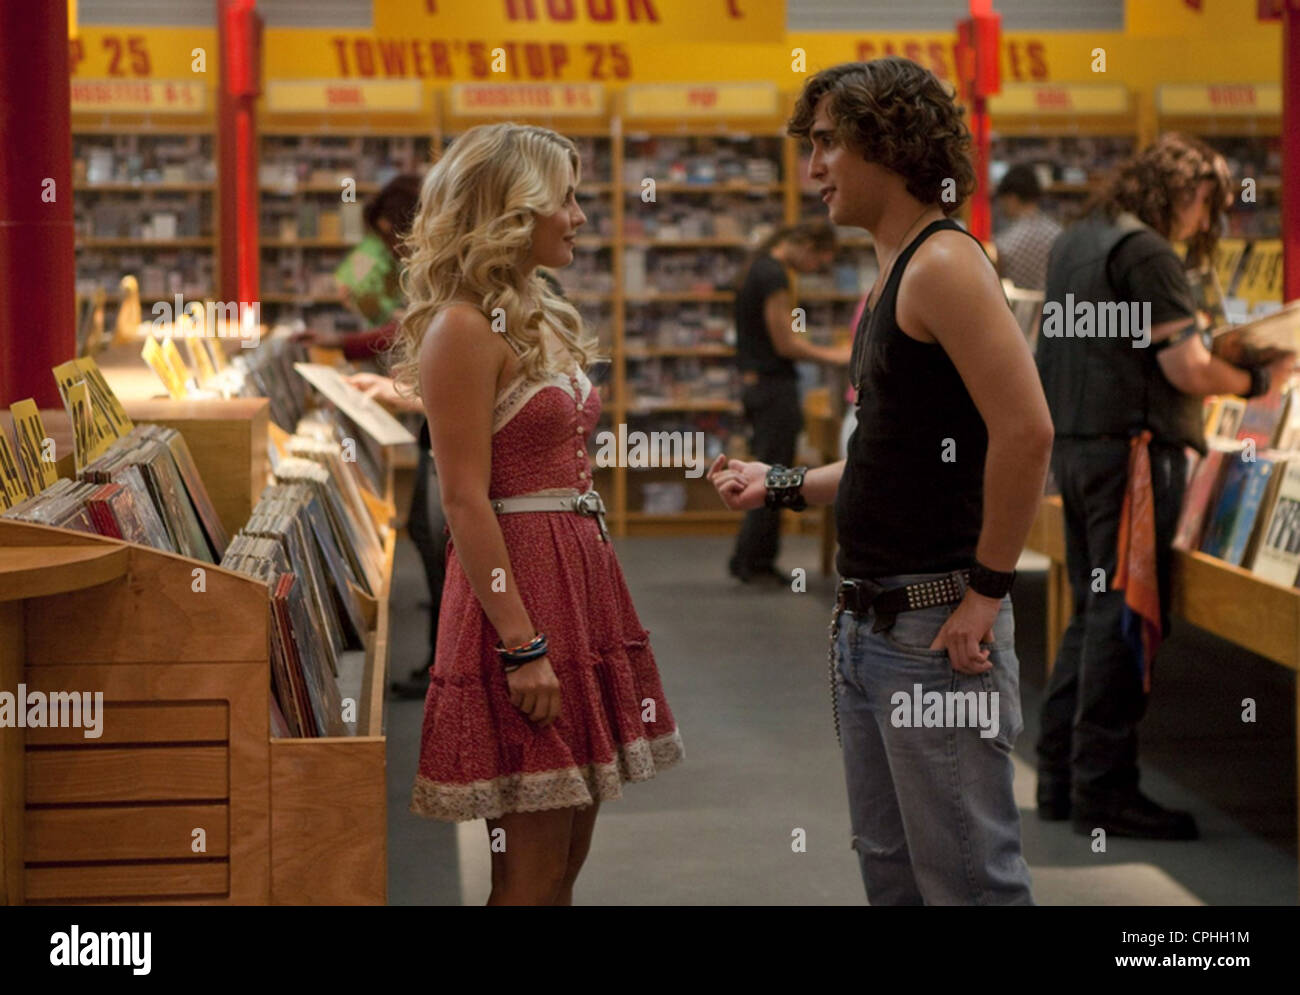 ROCK OF AGES 2012 Warner Bros film with Julianne Hough as Sherrie Christian and Diego Bonita as Drew Boley - Stock Image